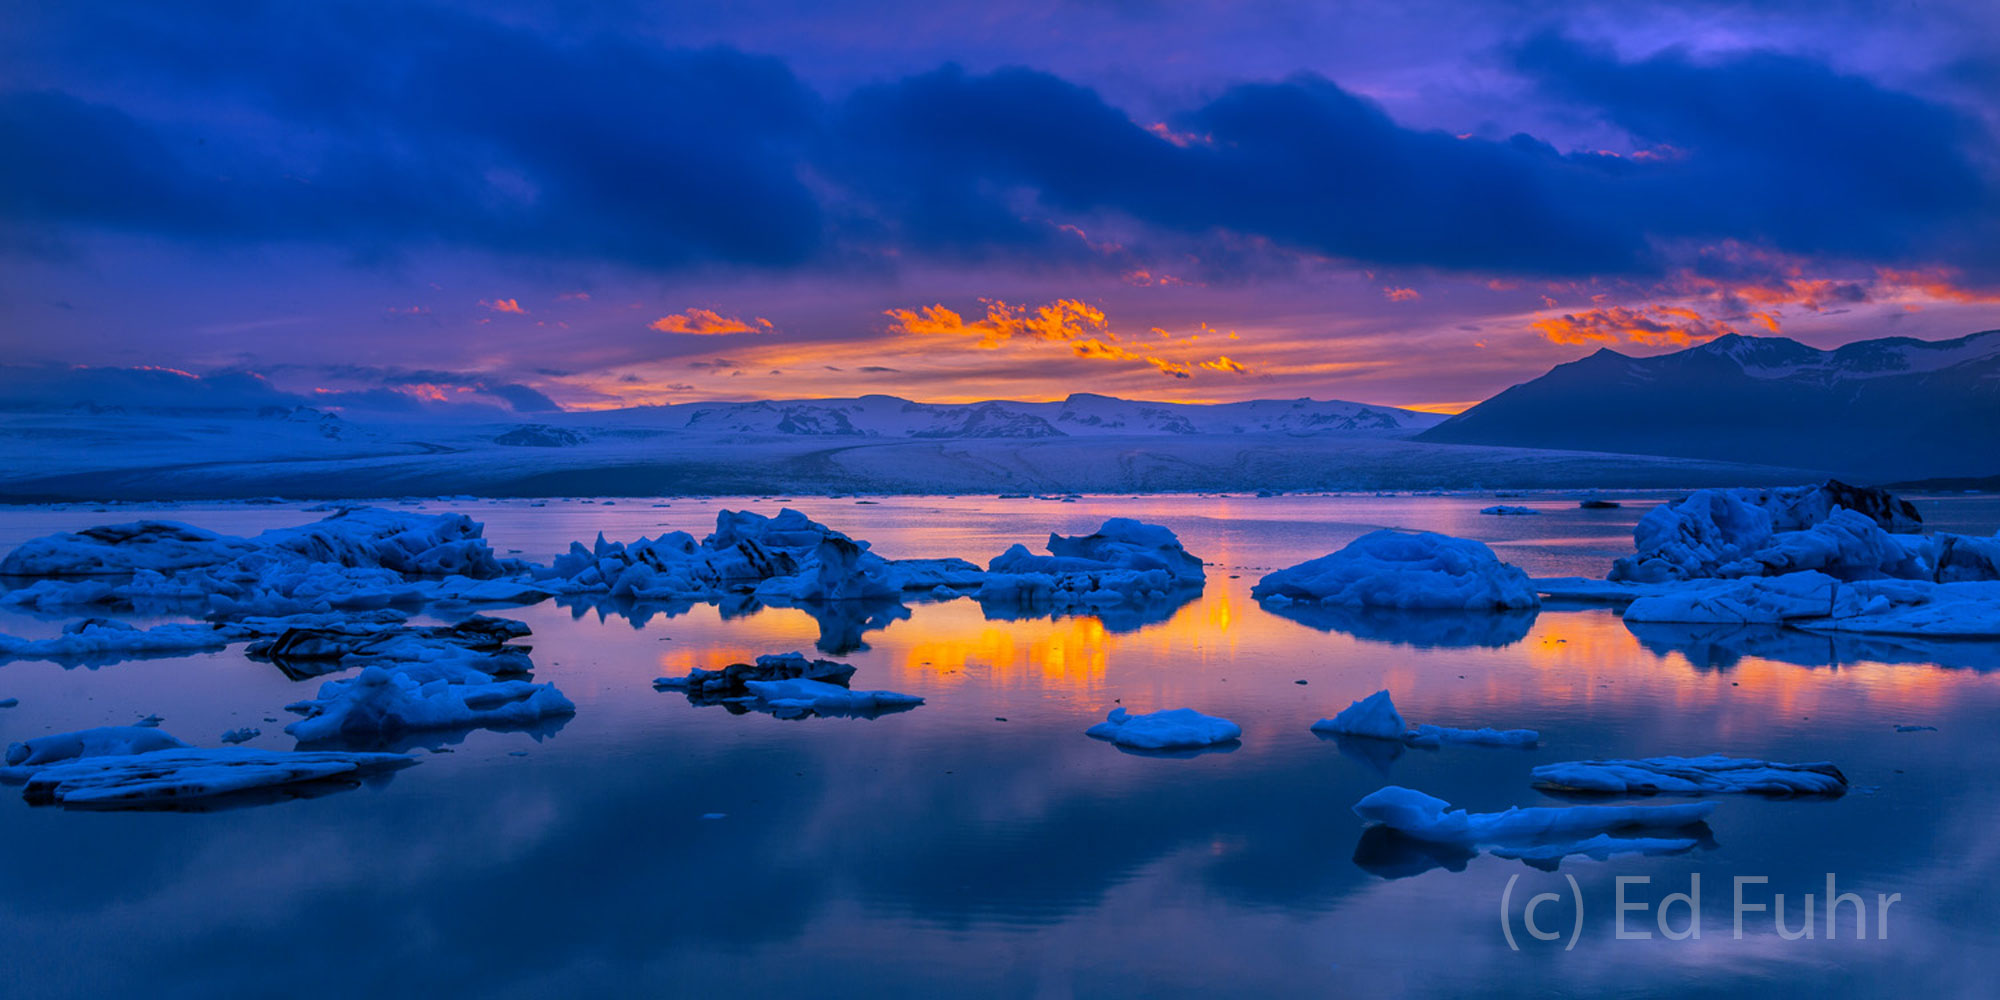 One of the most eerie and moving scenes I have ever witnessed, here lies Jokulsarlon lagoon at sunset.   Hundreds of icebergs...